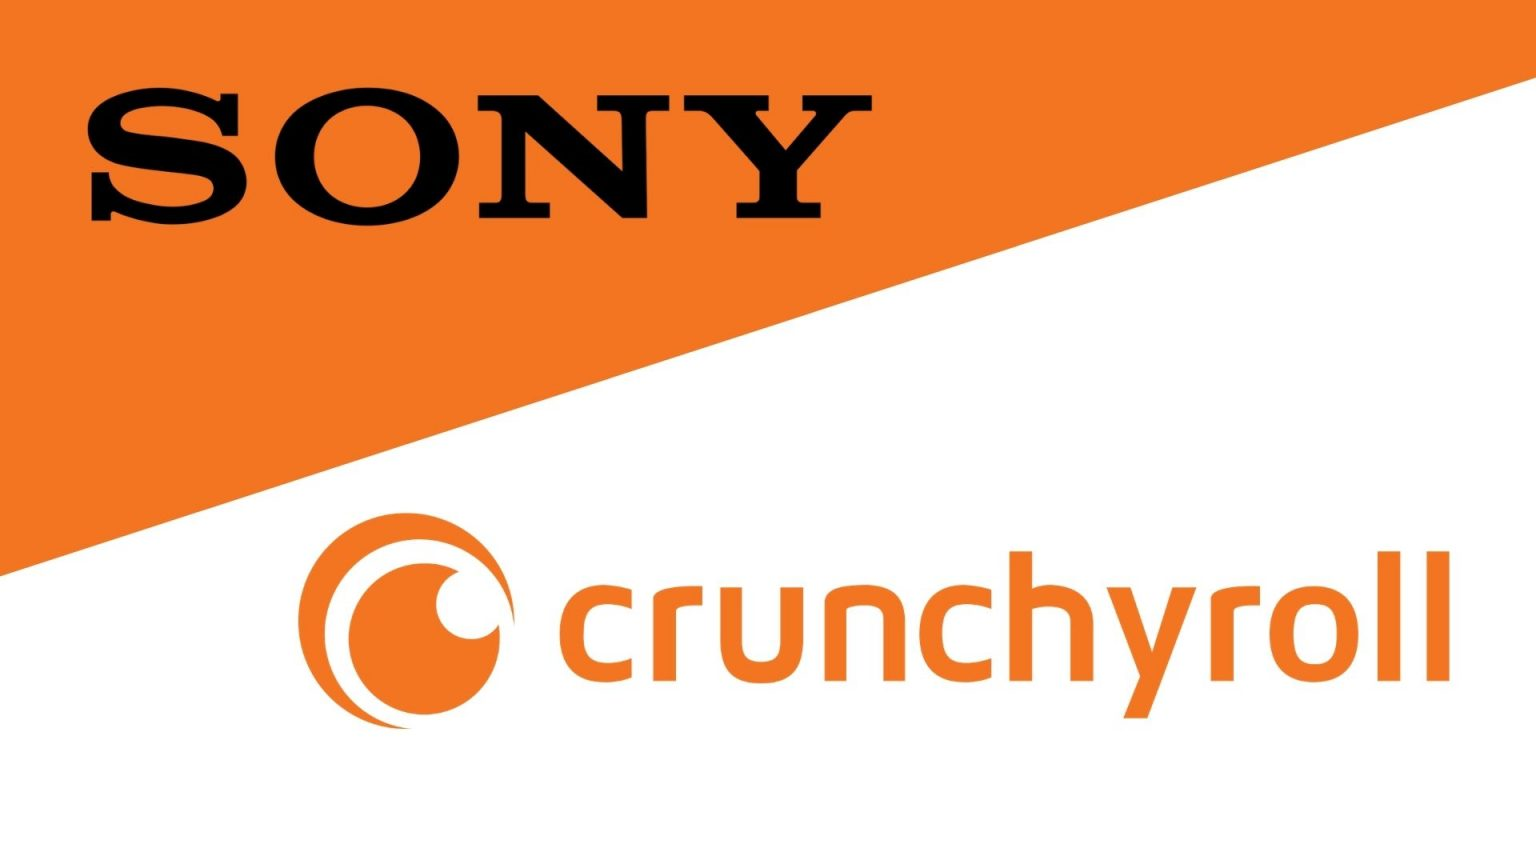 Sony buys anime streaming service Crunchyroll, Stadia is rolling out direct-to-YouTube live streaming now and other top news